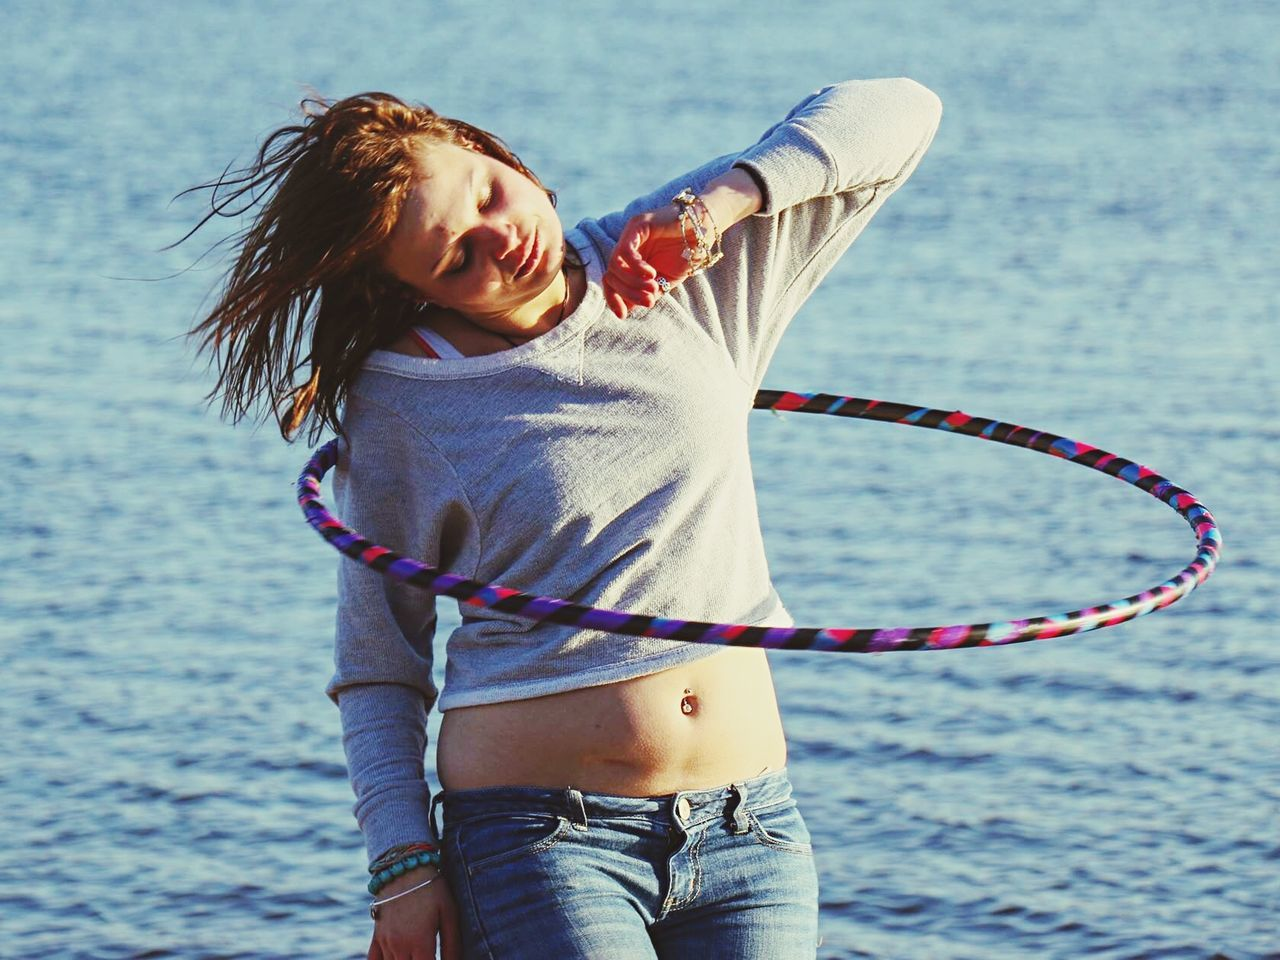 Doylestown Peace Valley Grateful Hula Hooping  Water Real People Three Quarter Length Fun Motion Leisure Activity Sea One Person Lifestyles Happiness Young Women Outdoors Smiling EyeEmNewHere EyeEm Ready   EyeEmNewHere